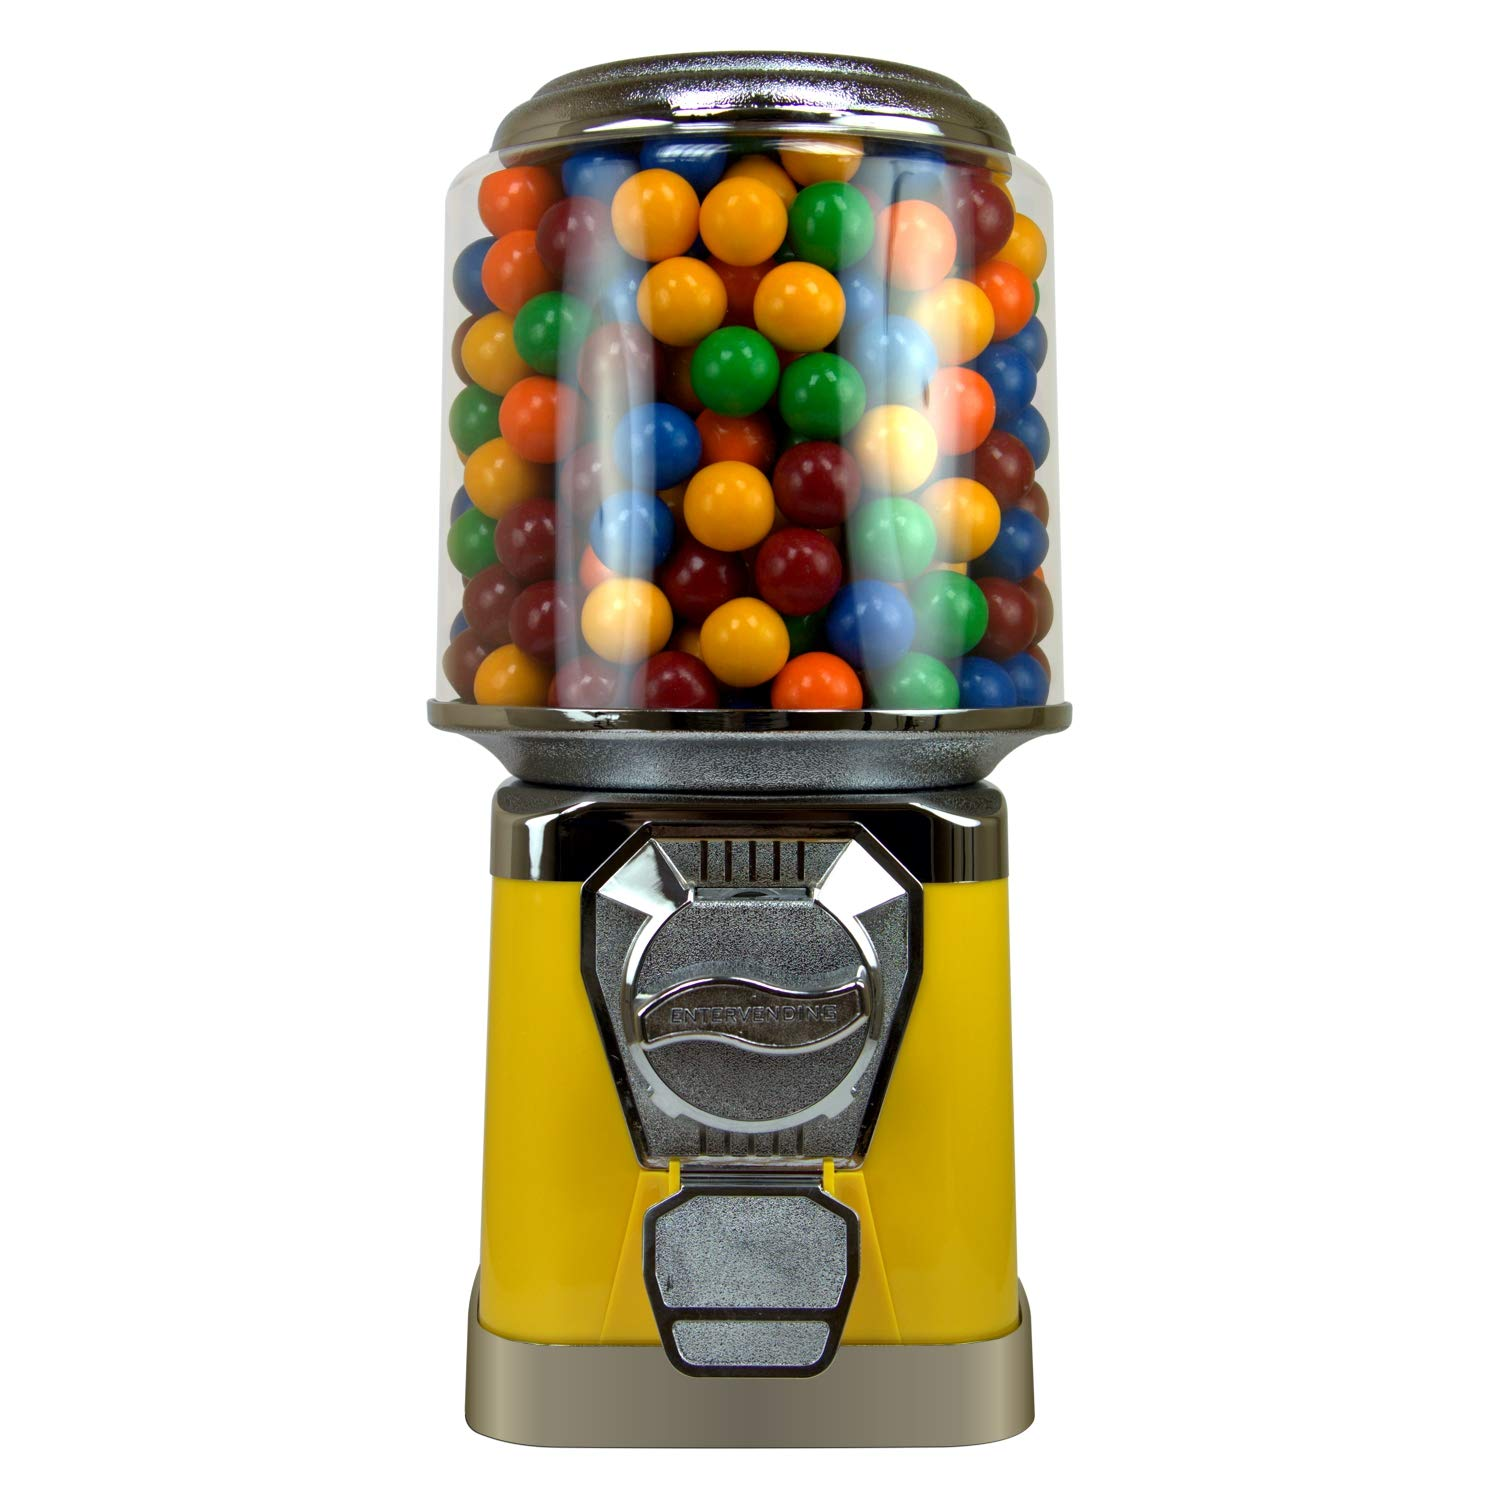 Gumball Machine for Kids - Yellow Vending Machine with Cylinder Globe - Bubble Gum Machine for Kids - Home Vending Machine - Coin Gumball Machine - Bubblegum Machine - Gum Ball Machine Without Stand